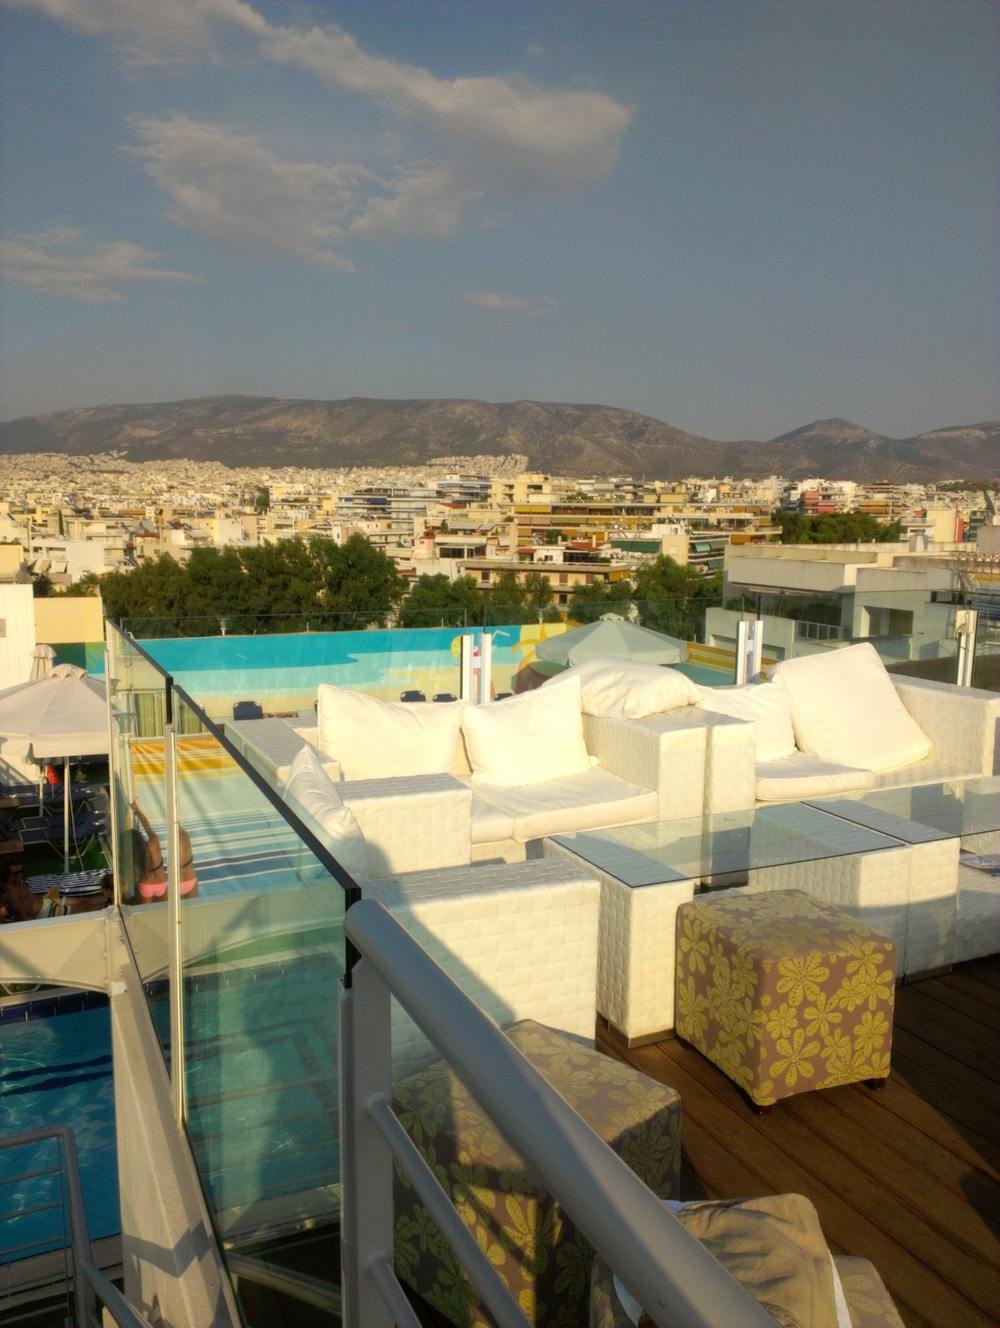 Poseidon Rooftop Pool